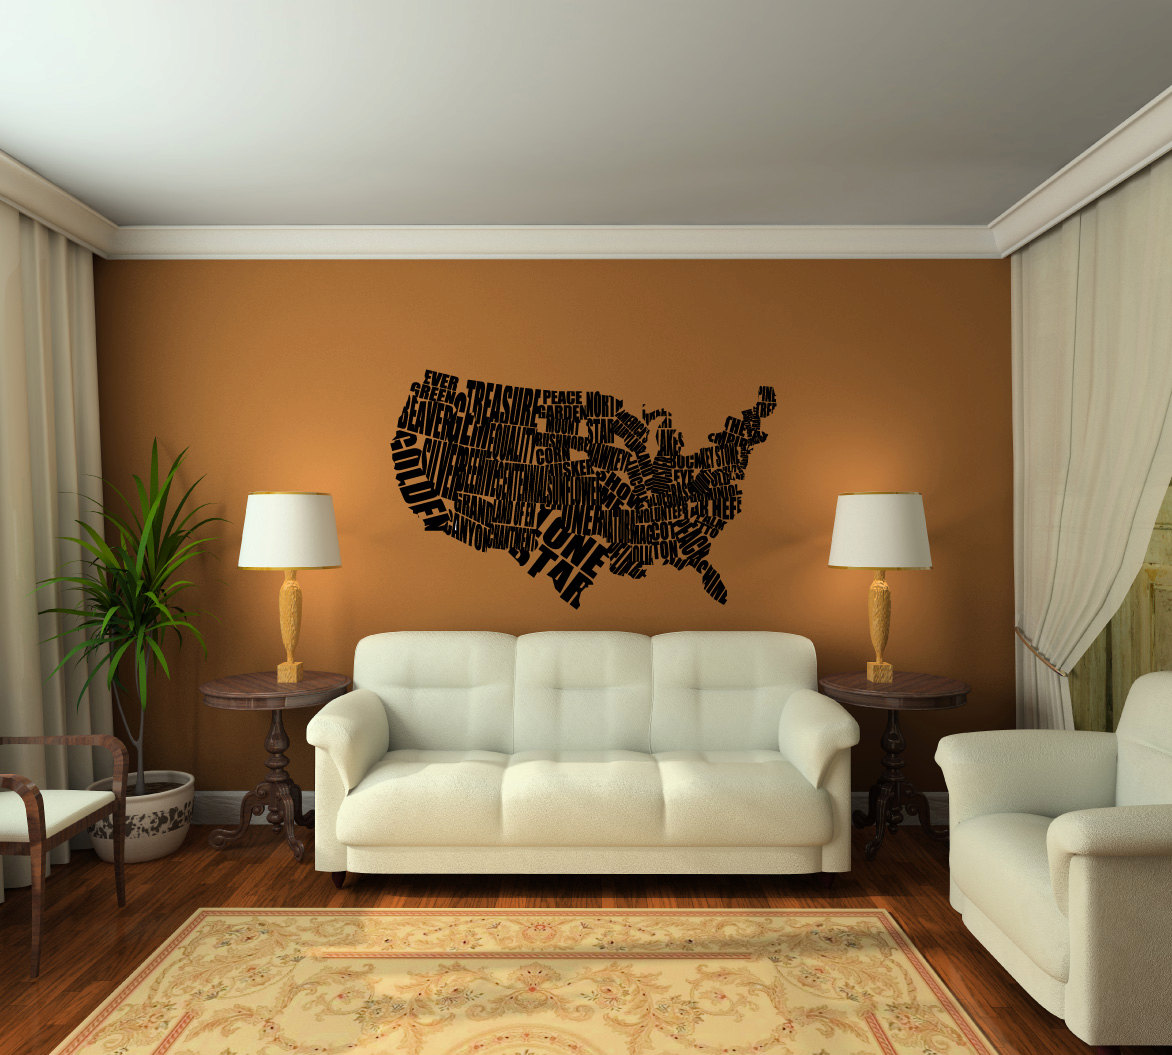 United States State Nickname Map Typography Vinyl Wall Decal Sticker Graphic